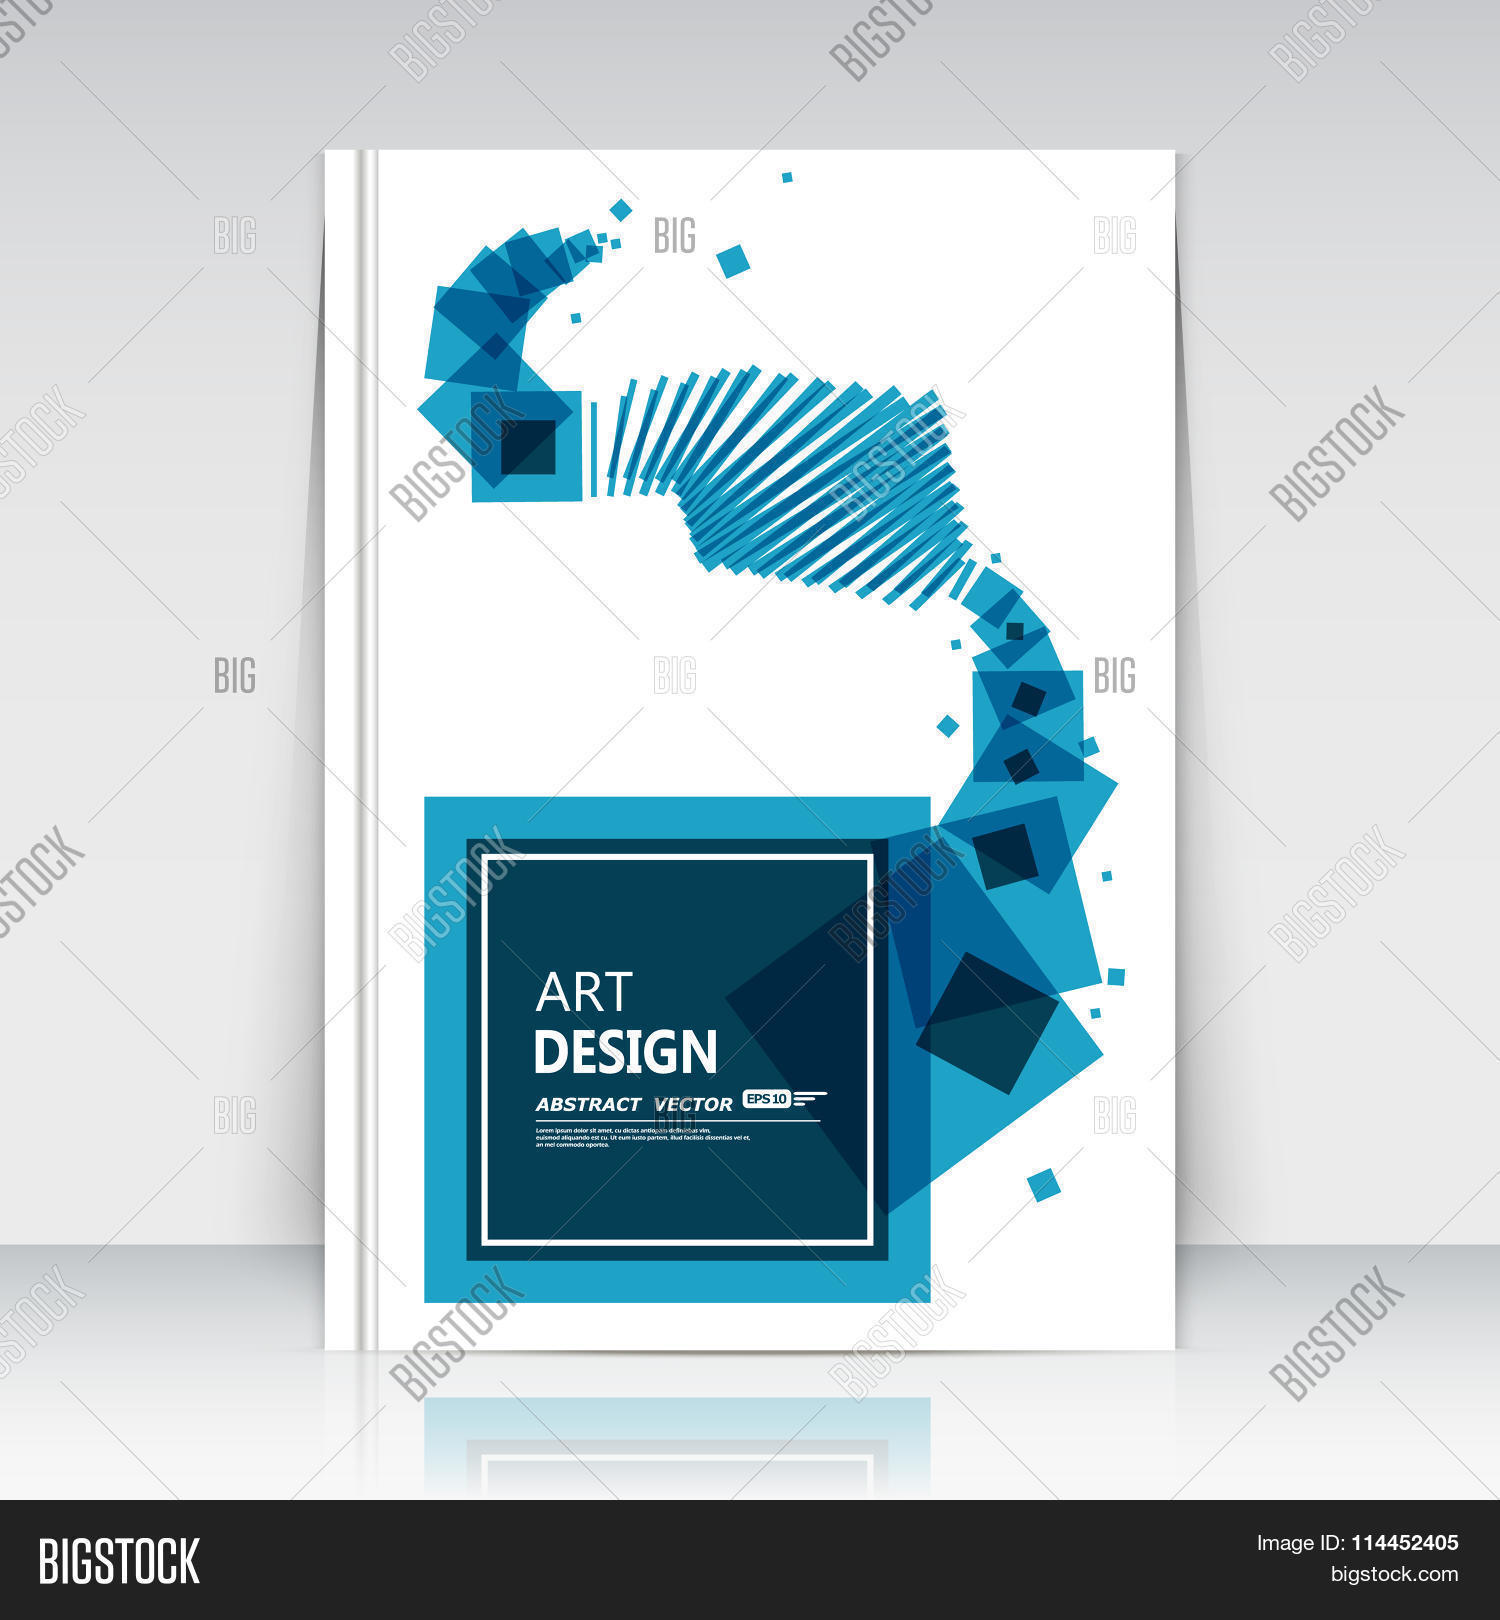 abstract composition blue squares lines art box blocks text abstract composition blue squares lines art box blocks text frame icon quadrate